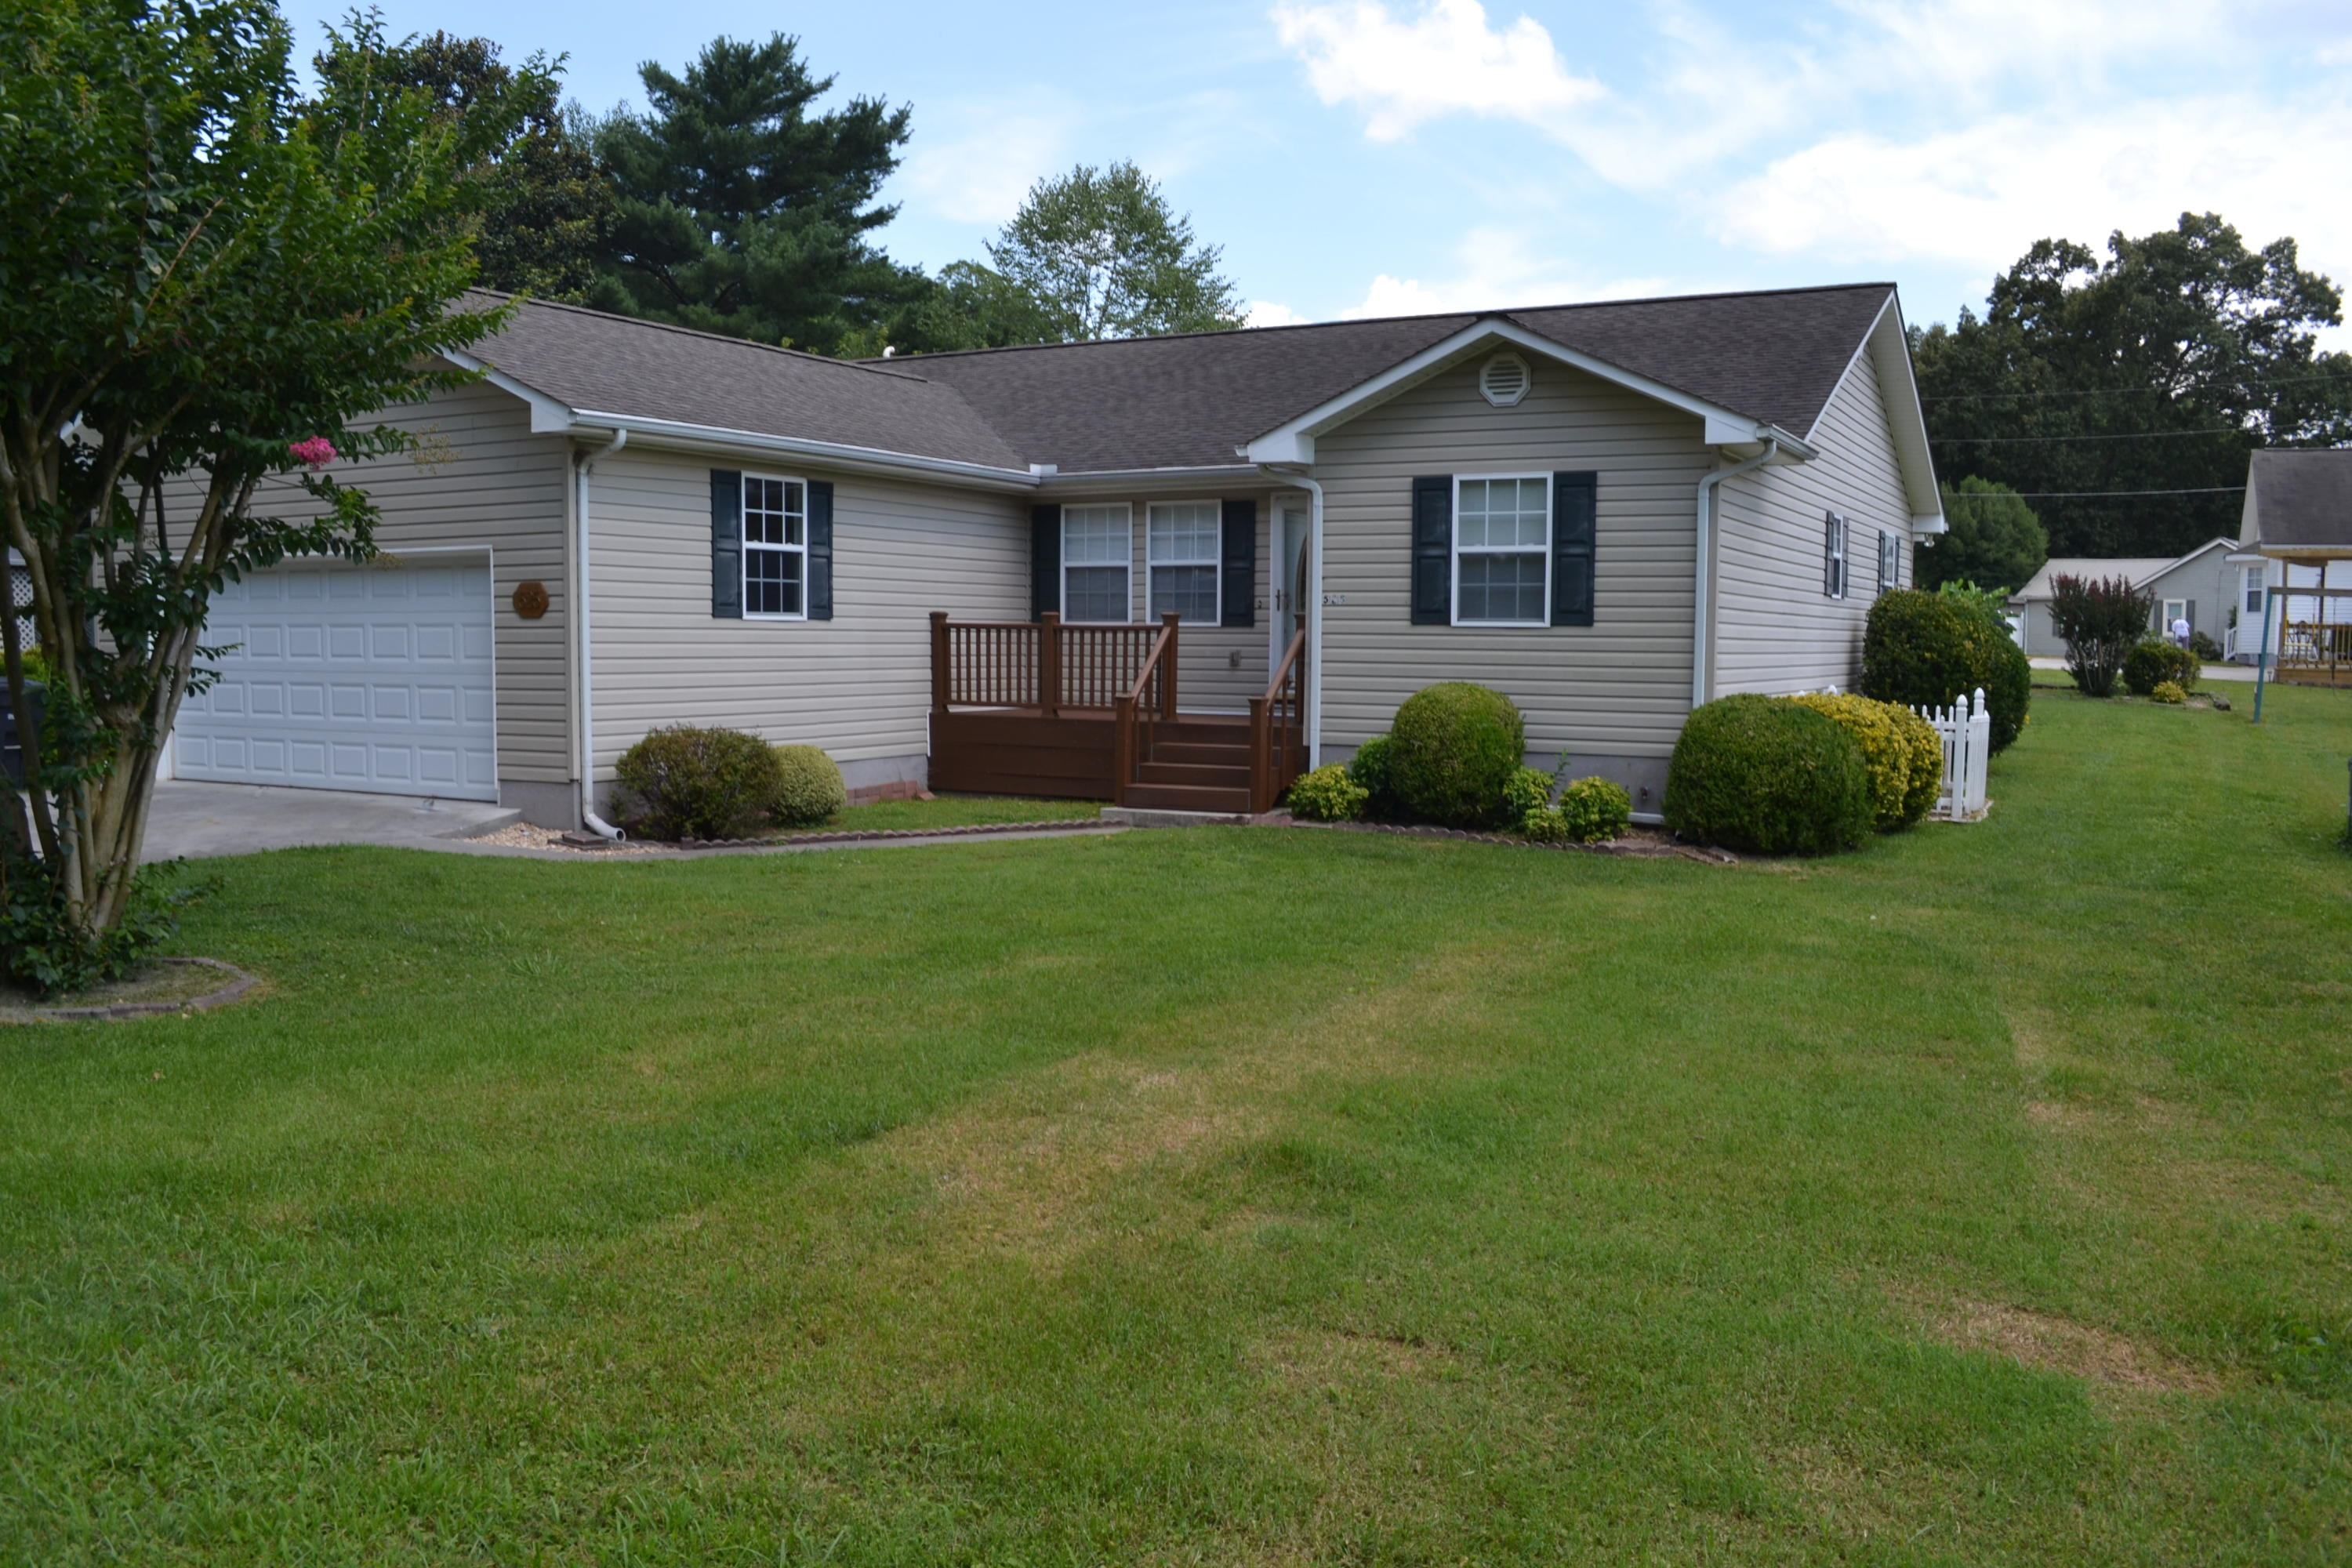 525 Oak, Athens, Tennessee, United States 37303, 3 Bedrooms Bedrooms, ,2 BathroomsBathrooms,Single Family,For Sale,Oak,1085855